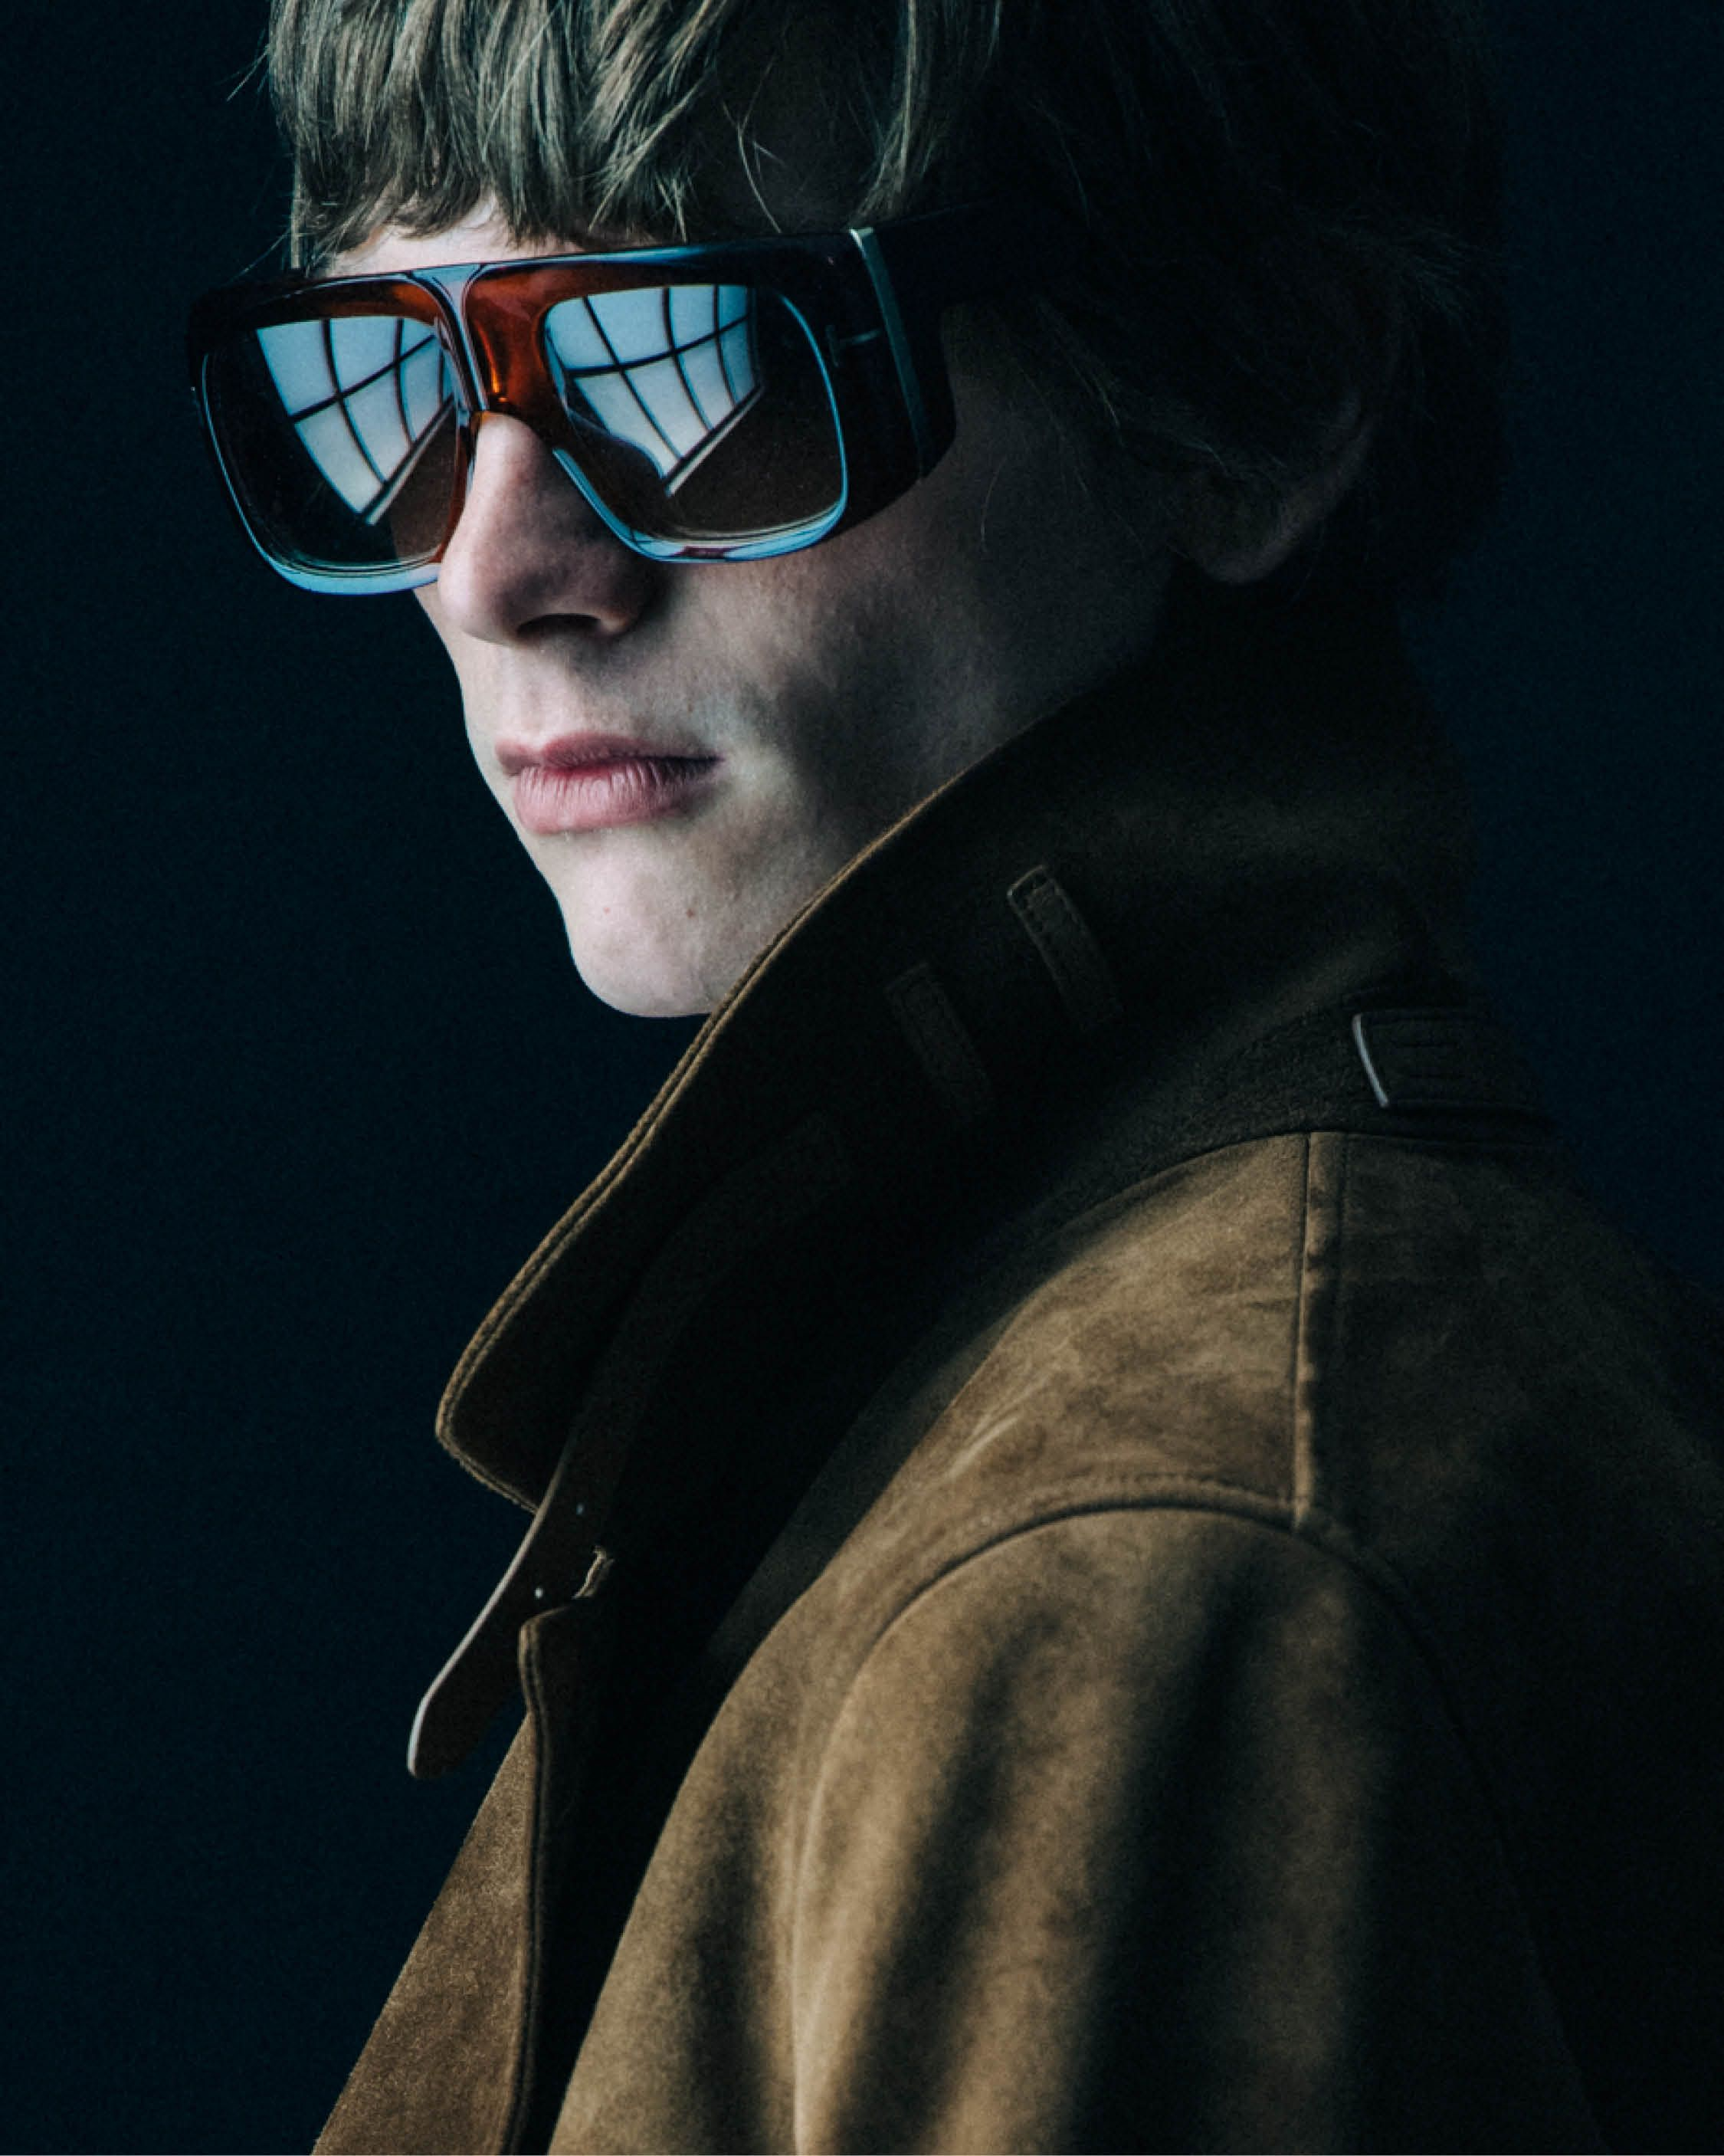 91b417ec0e5 Modern TOM FORD Eyewear from the Men s SS19 Collection.  TOMFORD   TOMFORDSS19  MFW